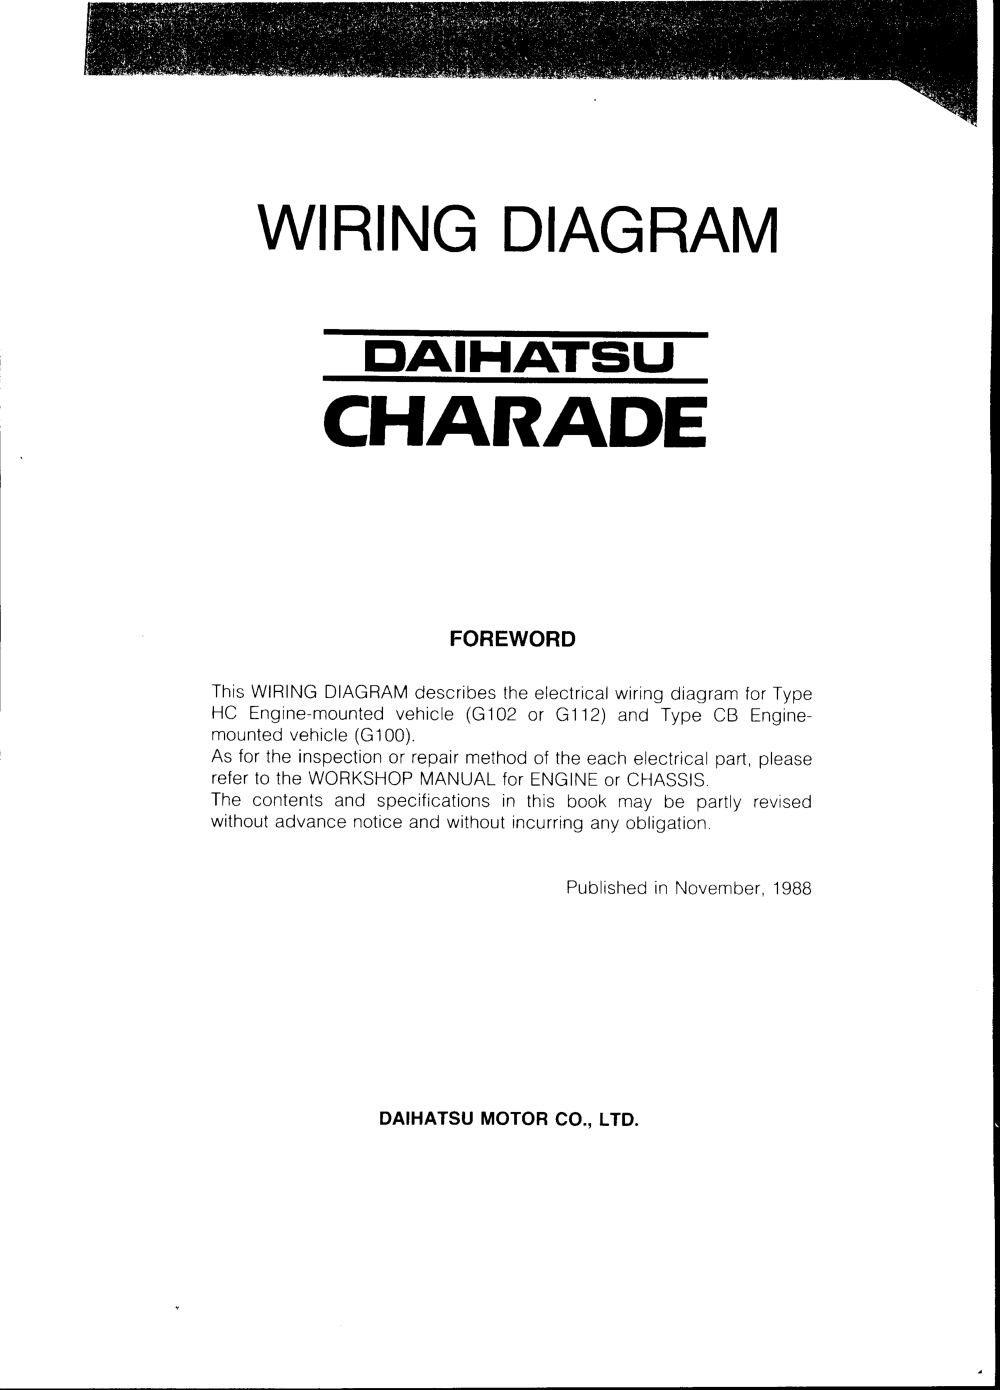 medium resolution of page 1 daihatsu charade 1988 misc documents wiring diagram pdf daihatsu wiring diagrams